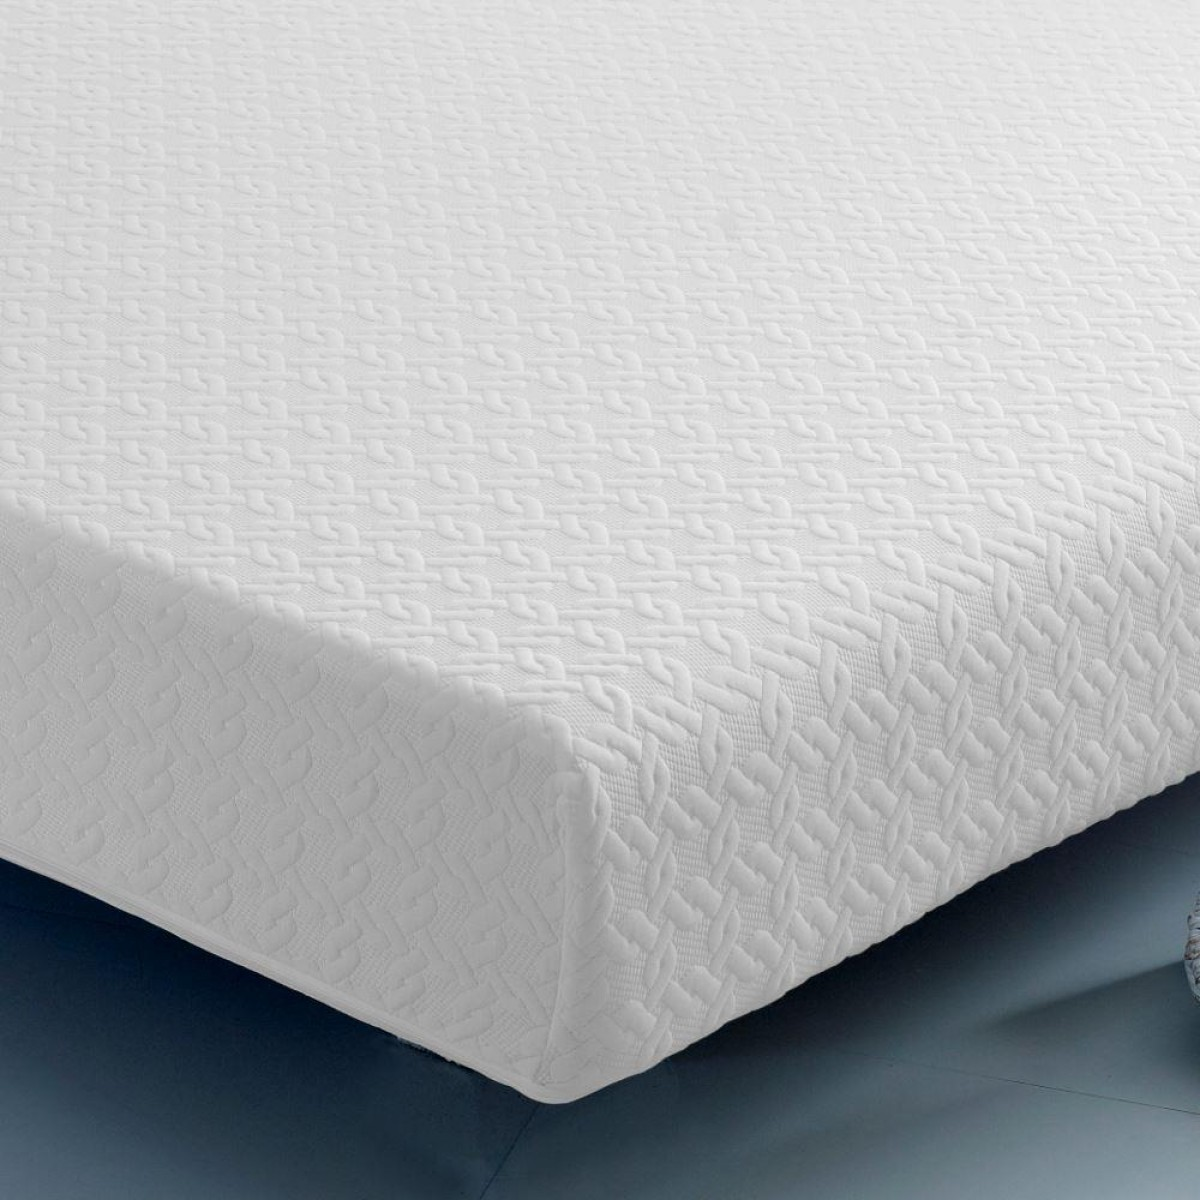 Extra Firm Foam Mattress Ultimate Ortho Reflex Foam Support Orthopaedic Rolled